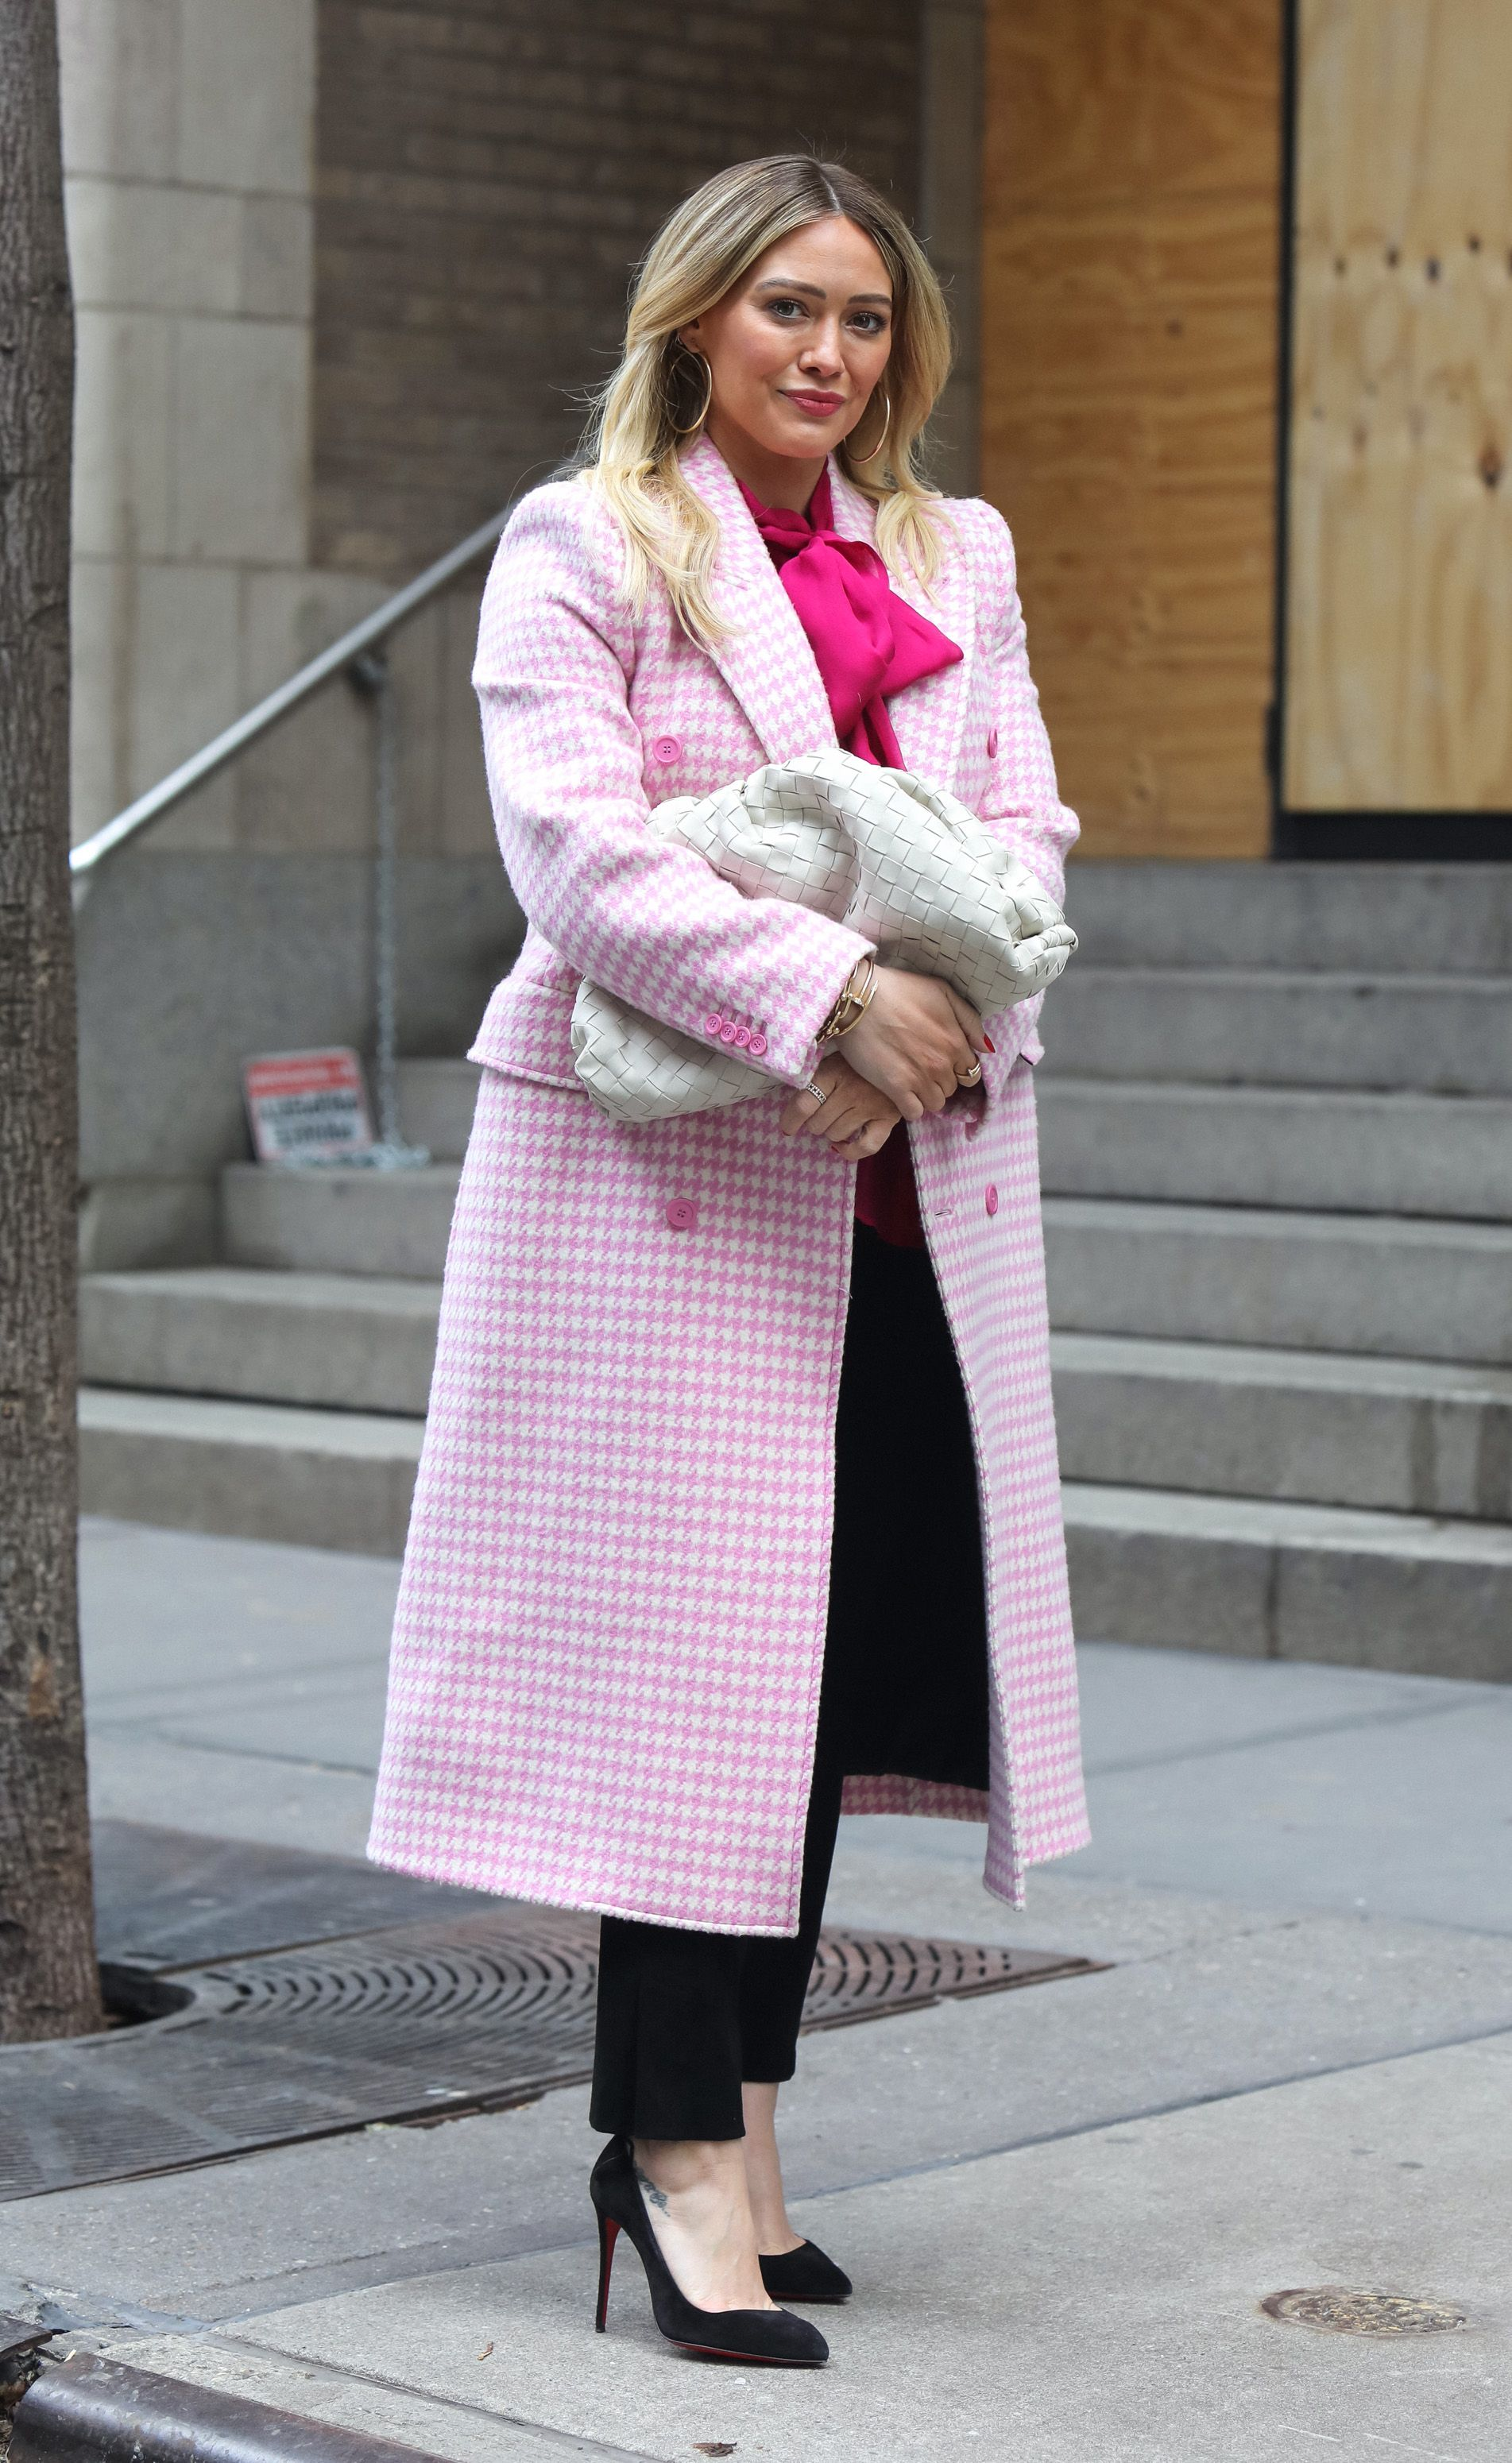 Hilary Duff Bundles Up in A Pretty Pink Tweed Coat on the NYC 'Younger' Set